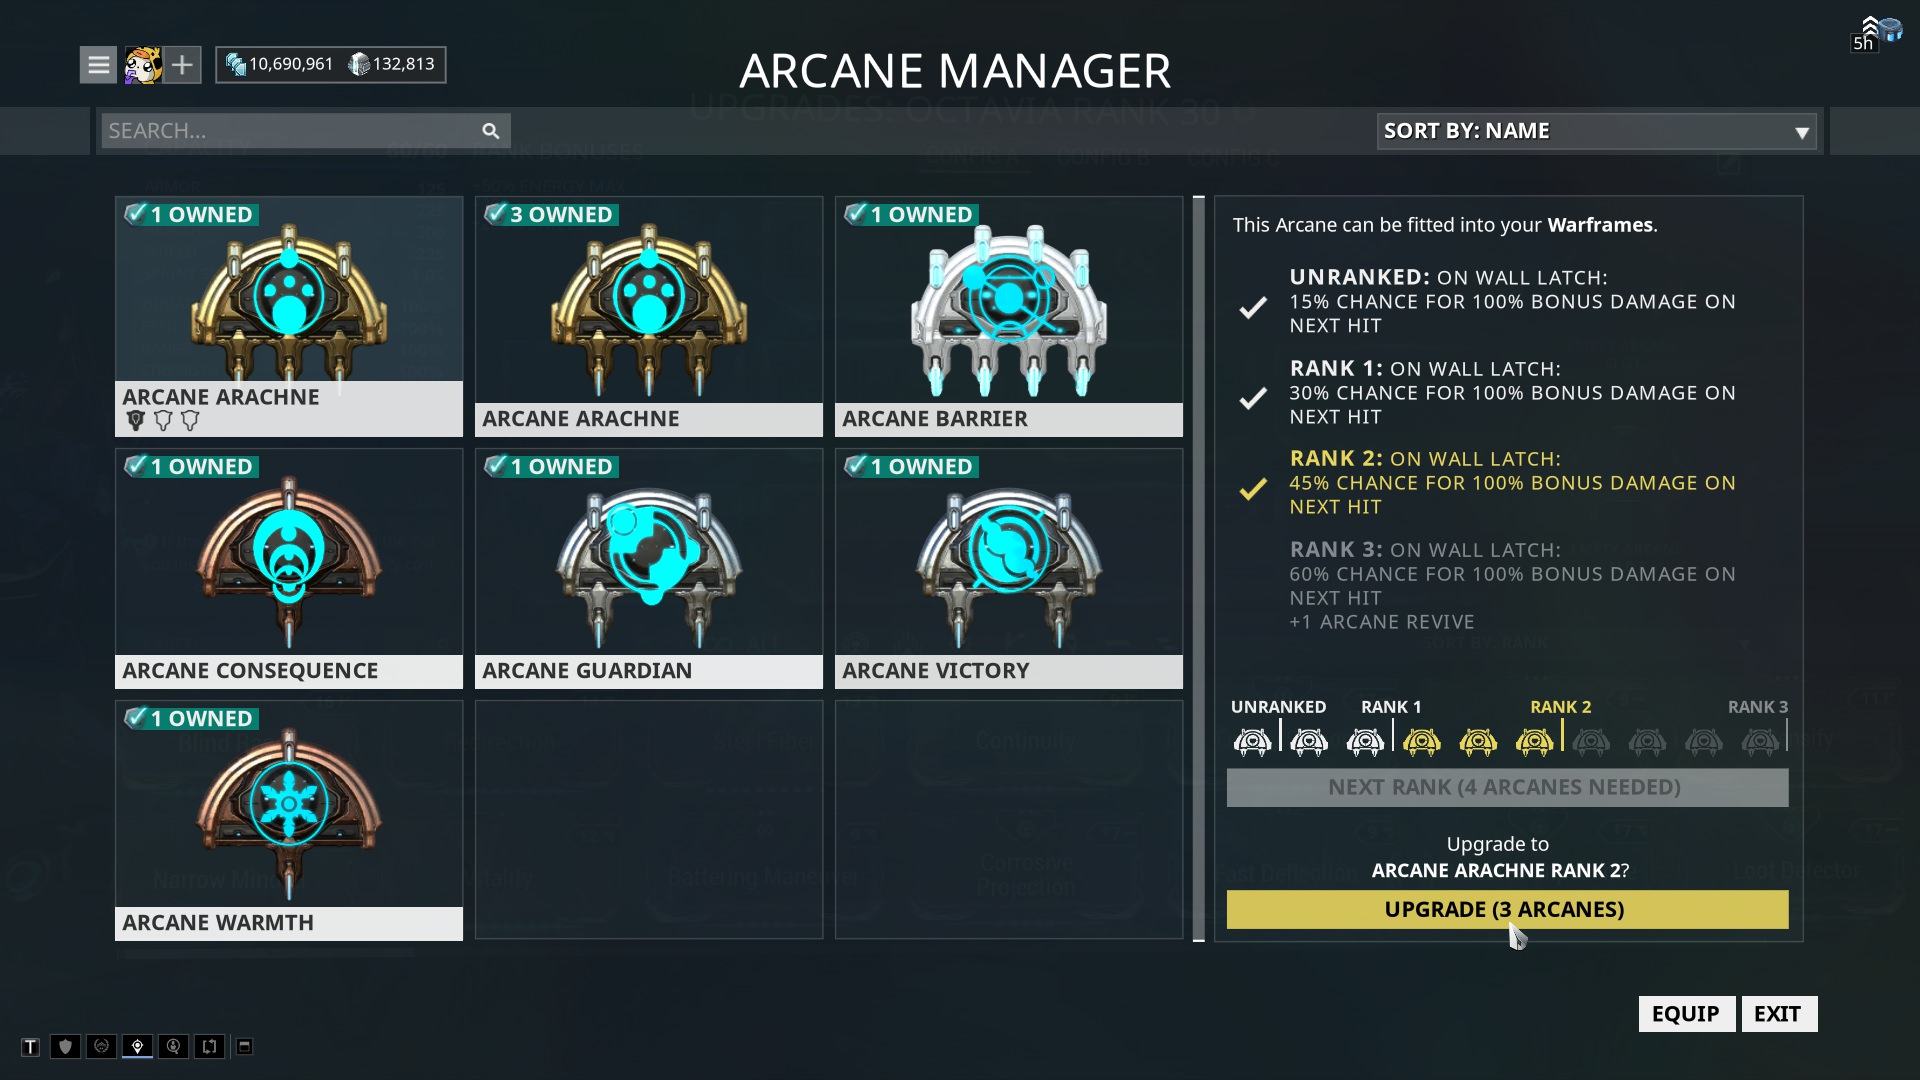 Warframe Best Arcanes 2019 Arcane Enhancement | WARFRAME Wiki | FANDOM powered by Wikia